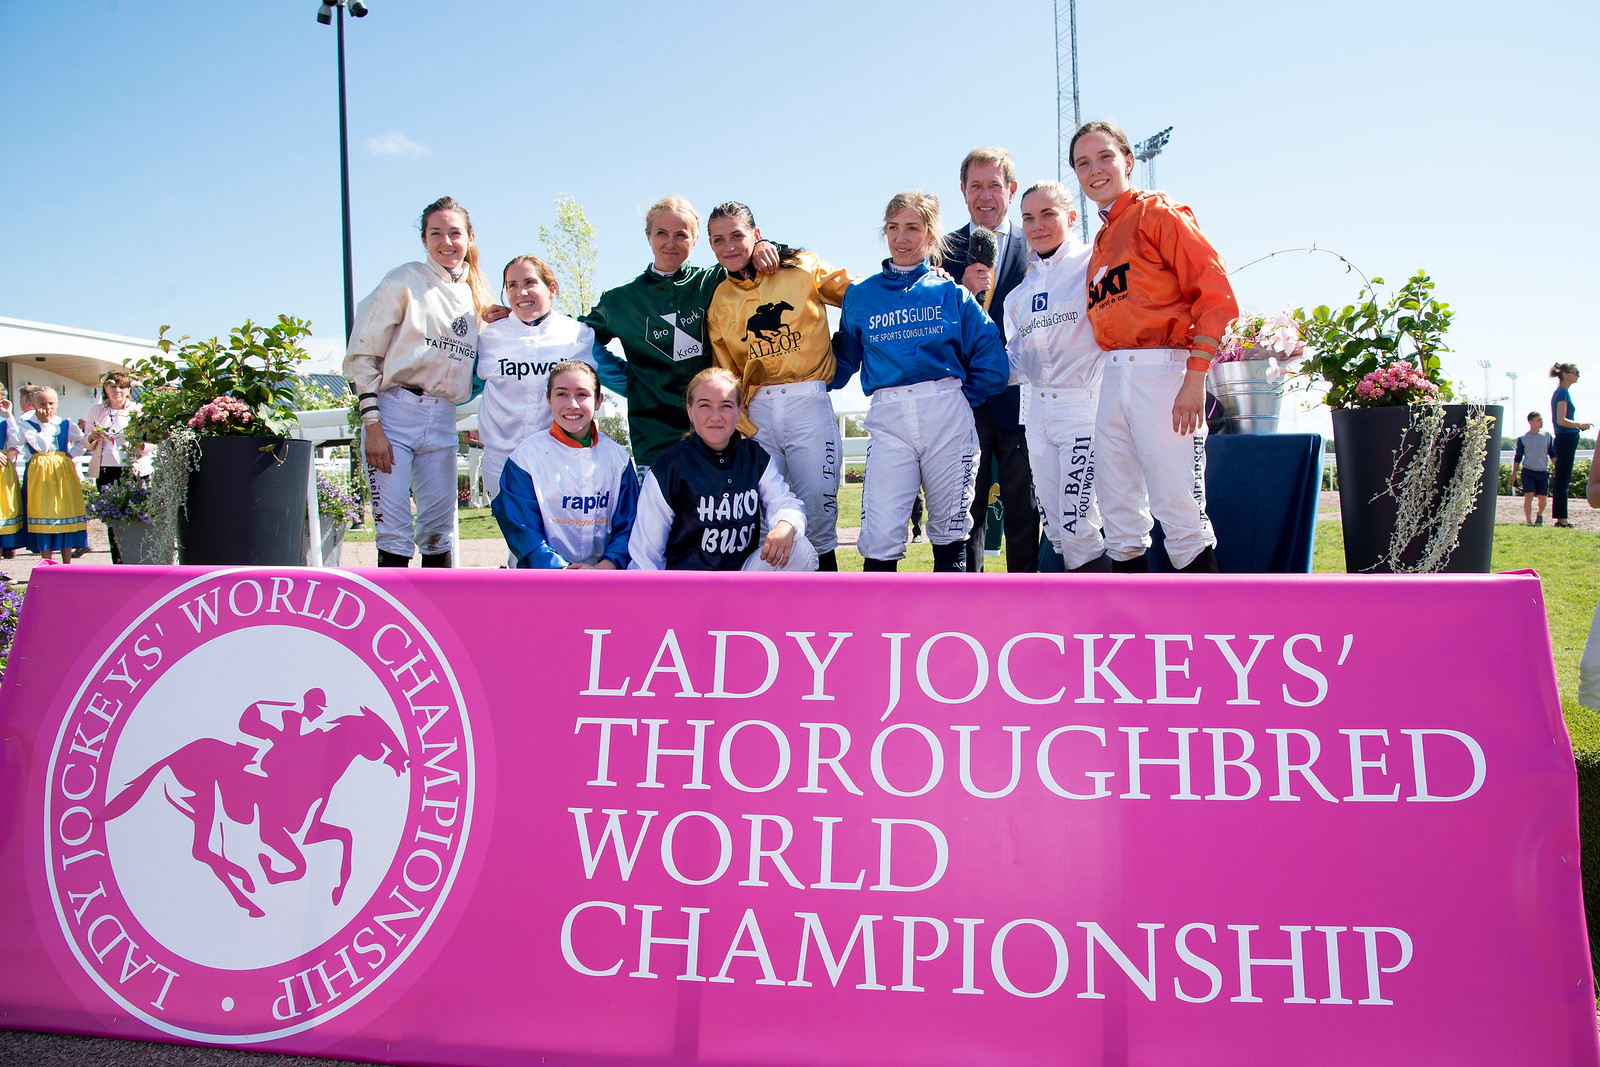 The participating jockeys in the 2018 LJTWC